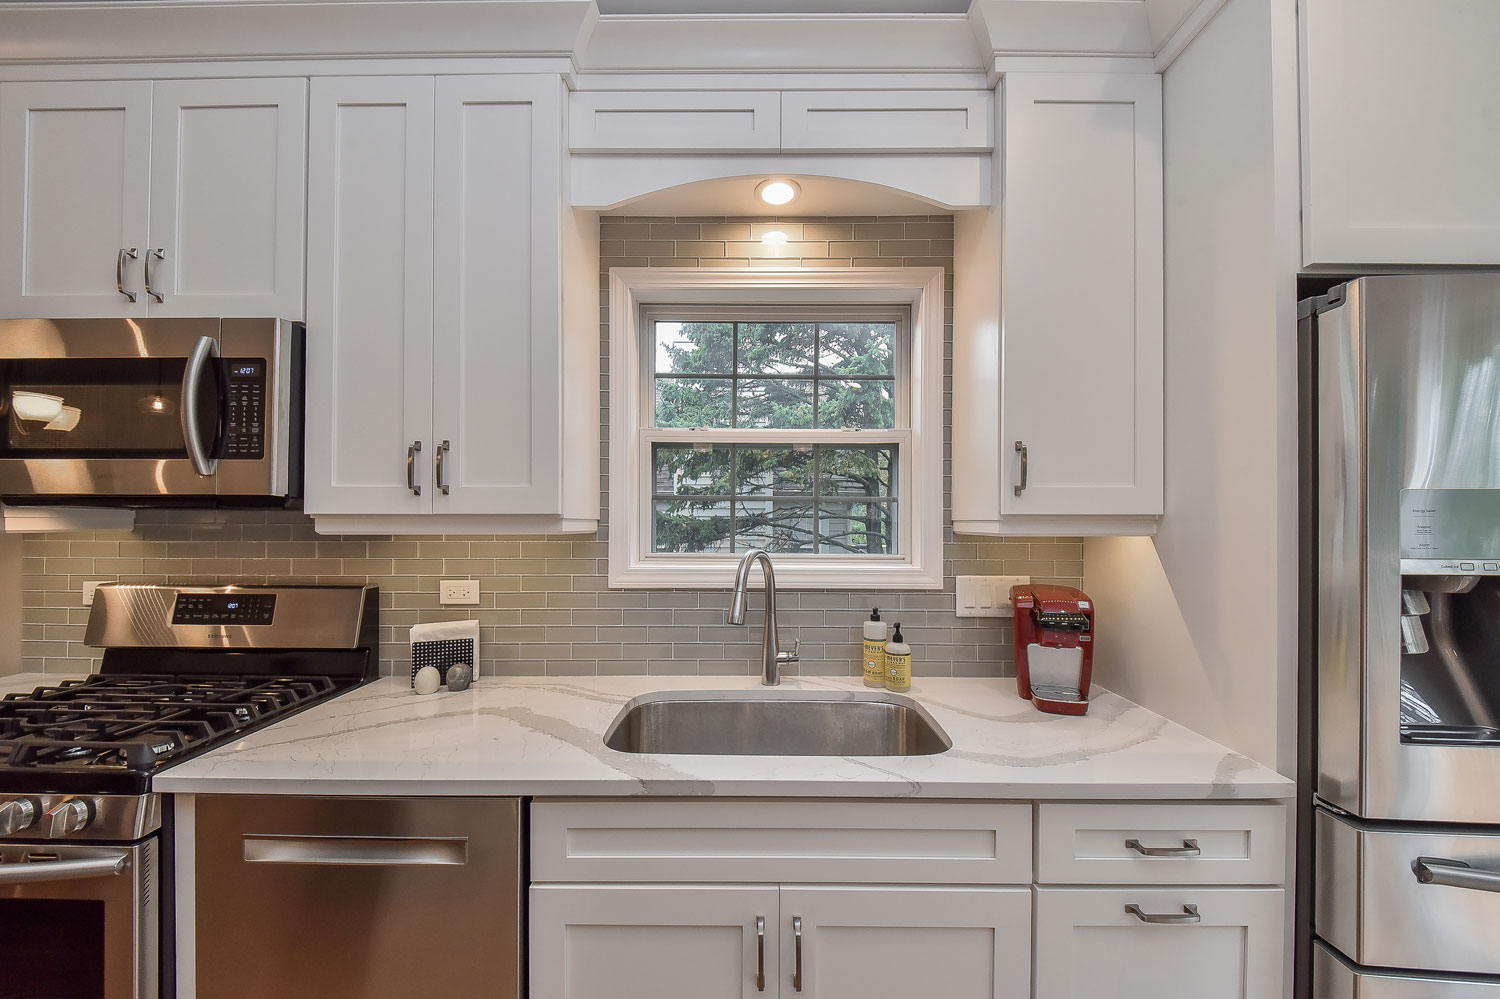 Naperville Kitchen Remodeling Project - Sebring Services